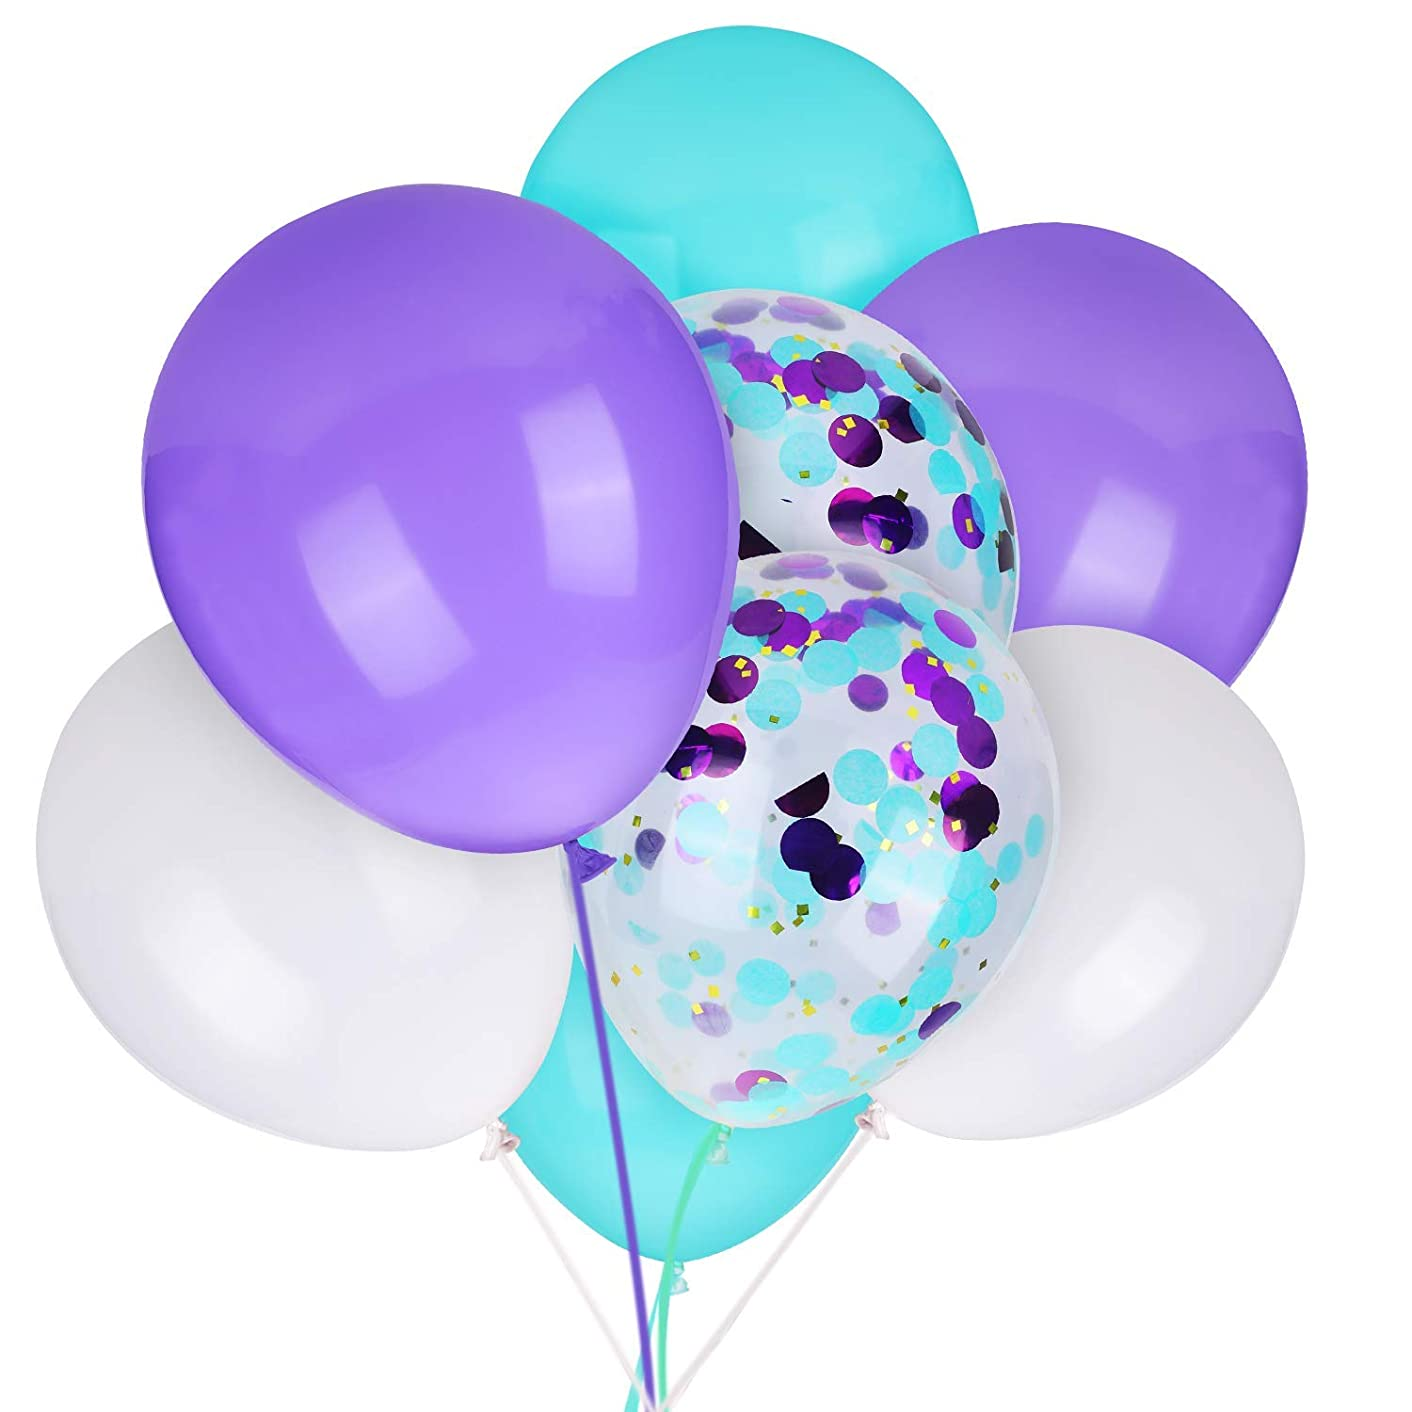 Mermaid Balloons Light Purple White Seafoam Blue for Mermaid Party Suppllies 12 inches Latex Balloon and Confetti Balloon for Baby Shower Under the Sea Party Mermaid Birthday Party Decorations 40 Pack